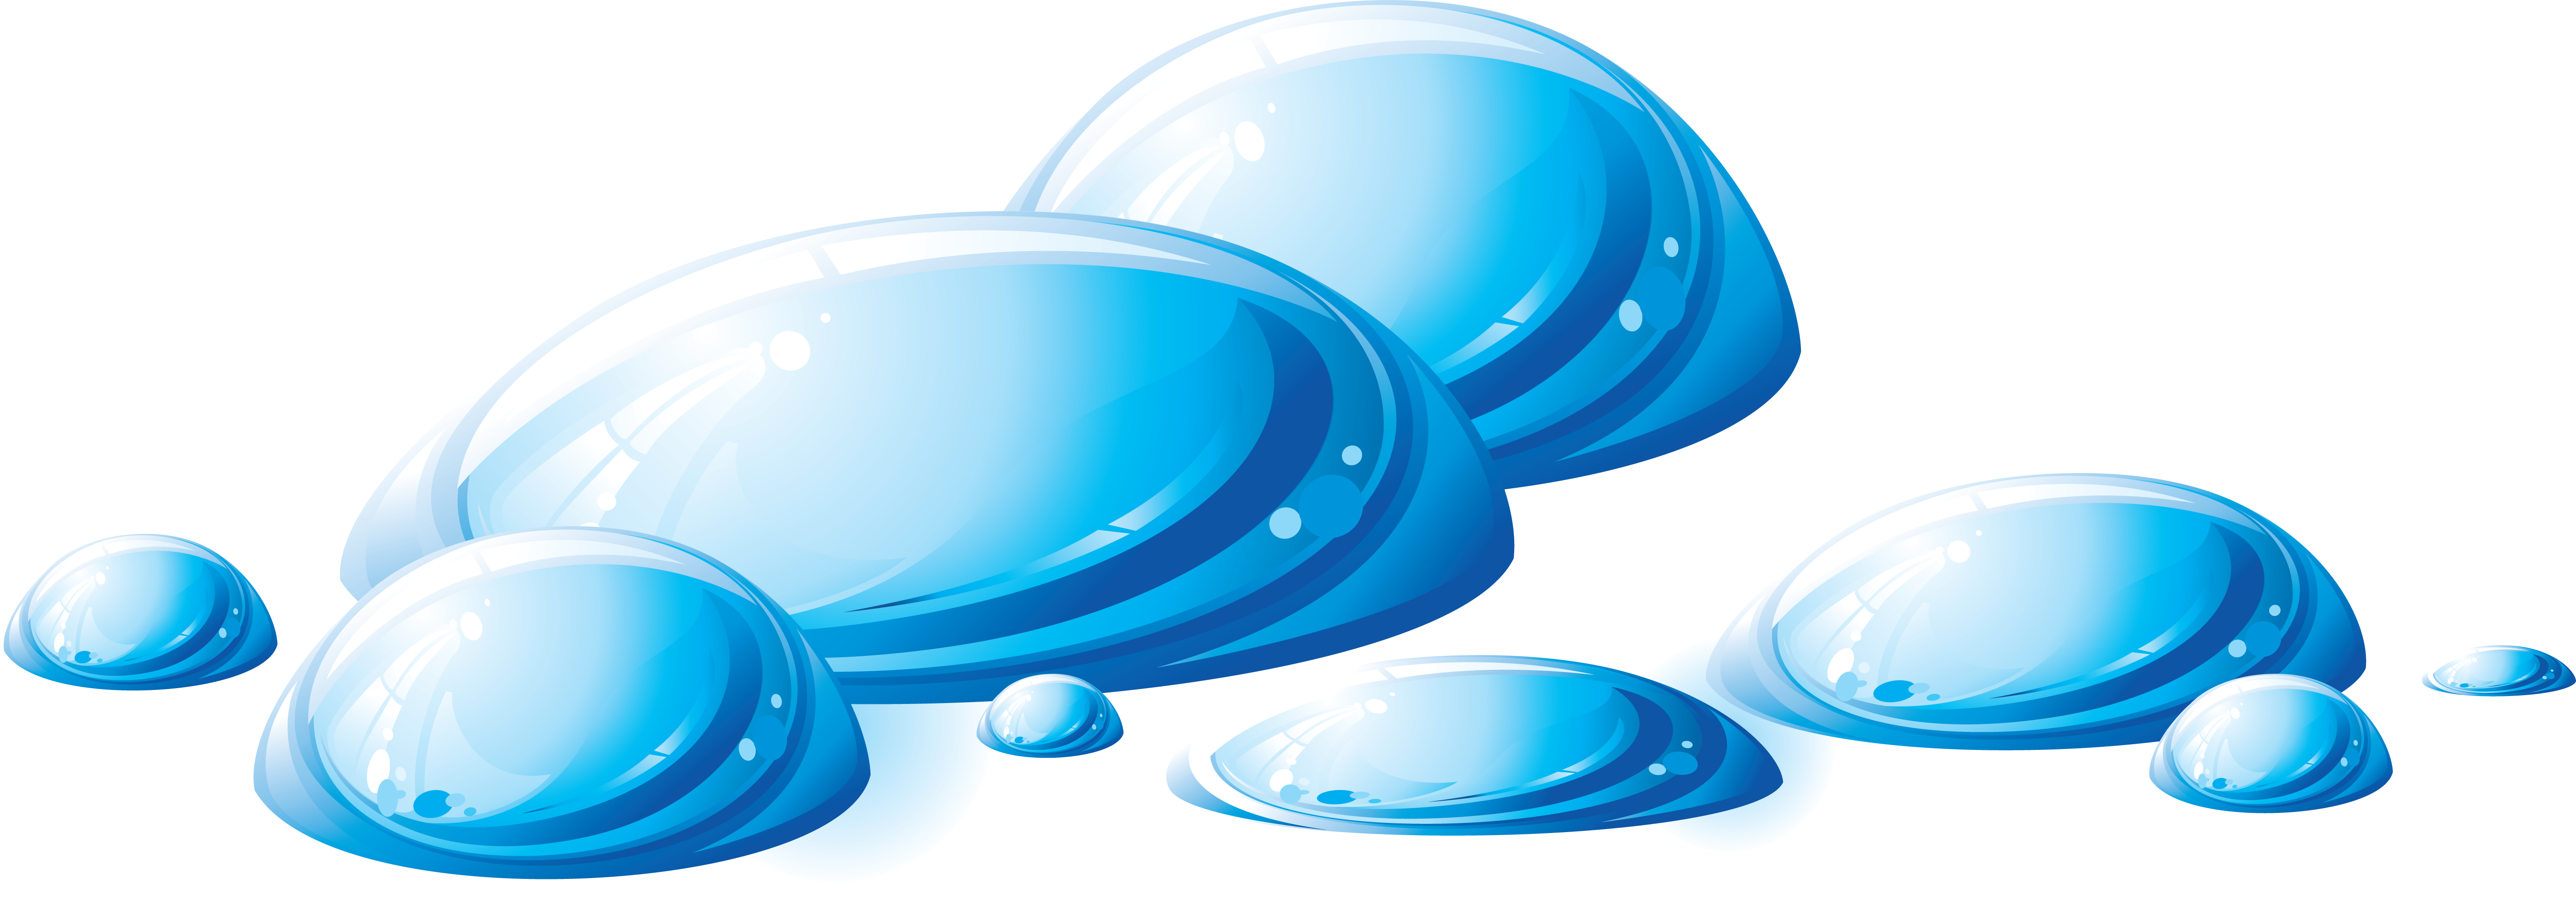 picture Dew drop free on. Animated clipart water.